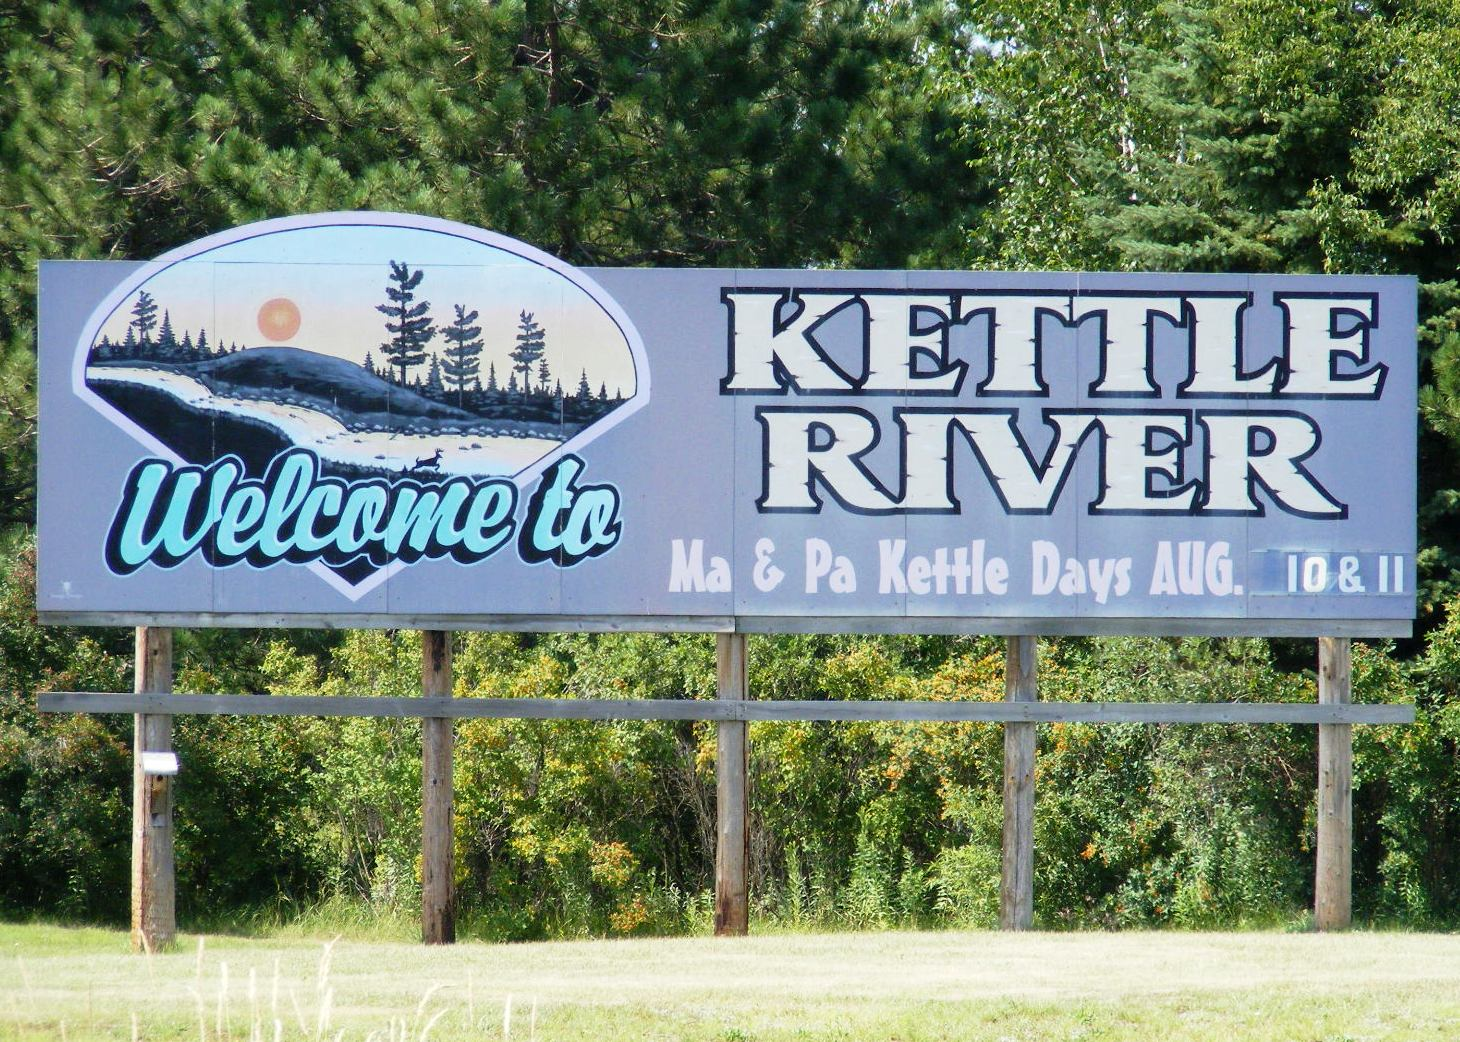 kettle river women Discover how easy it is to find women seeking dates in kettle river with mingle2's free kettle river dating service if you're tired of trying to meet kettle river women at bars and clubs, it's time to join the thousands of kettle river singles who are already online making dates and finding love in kettle river.